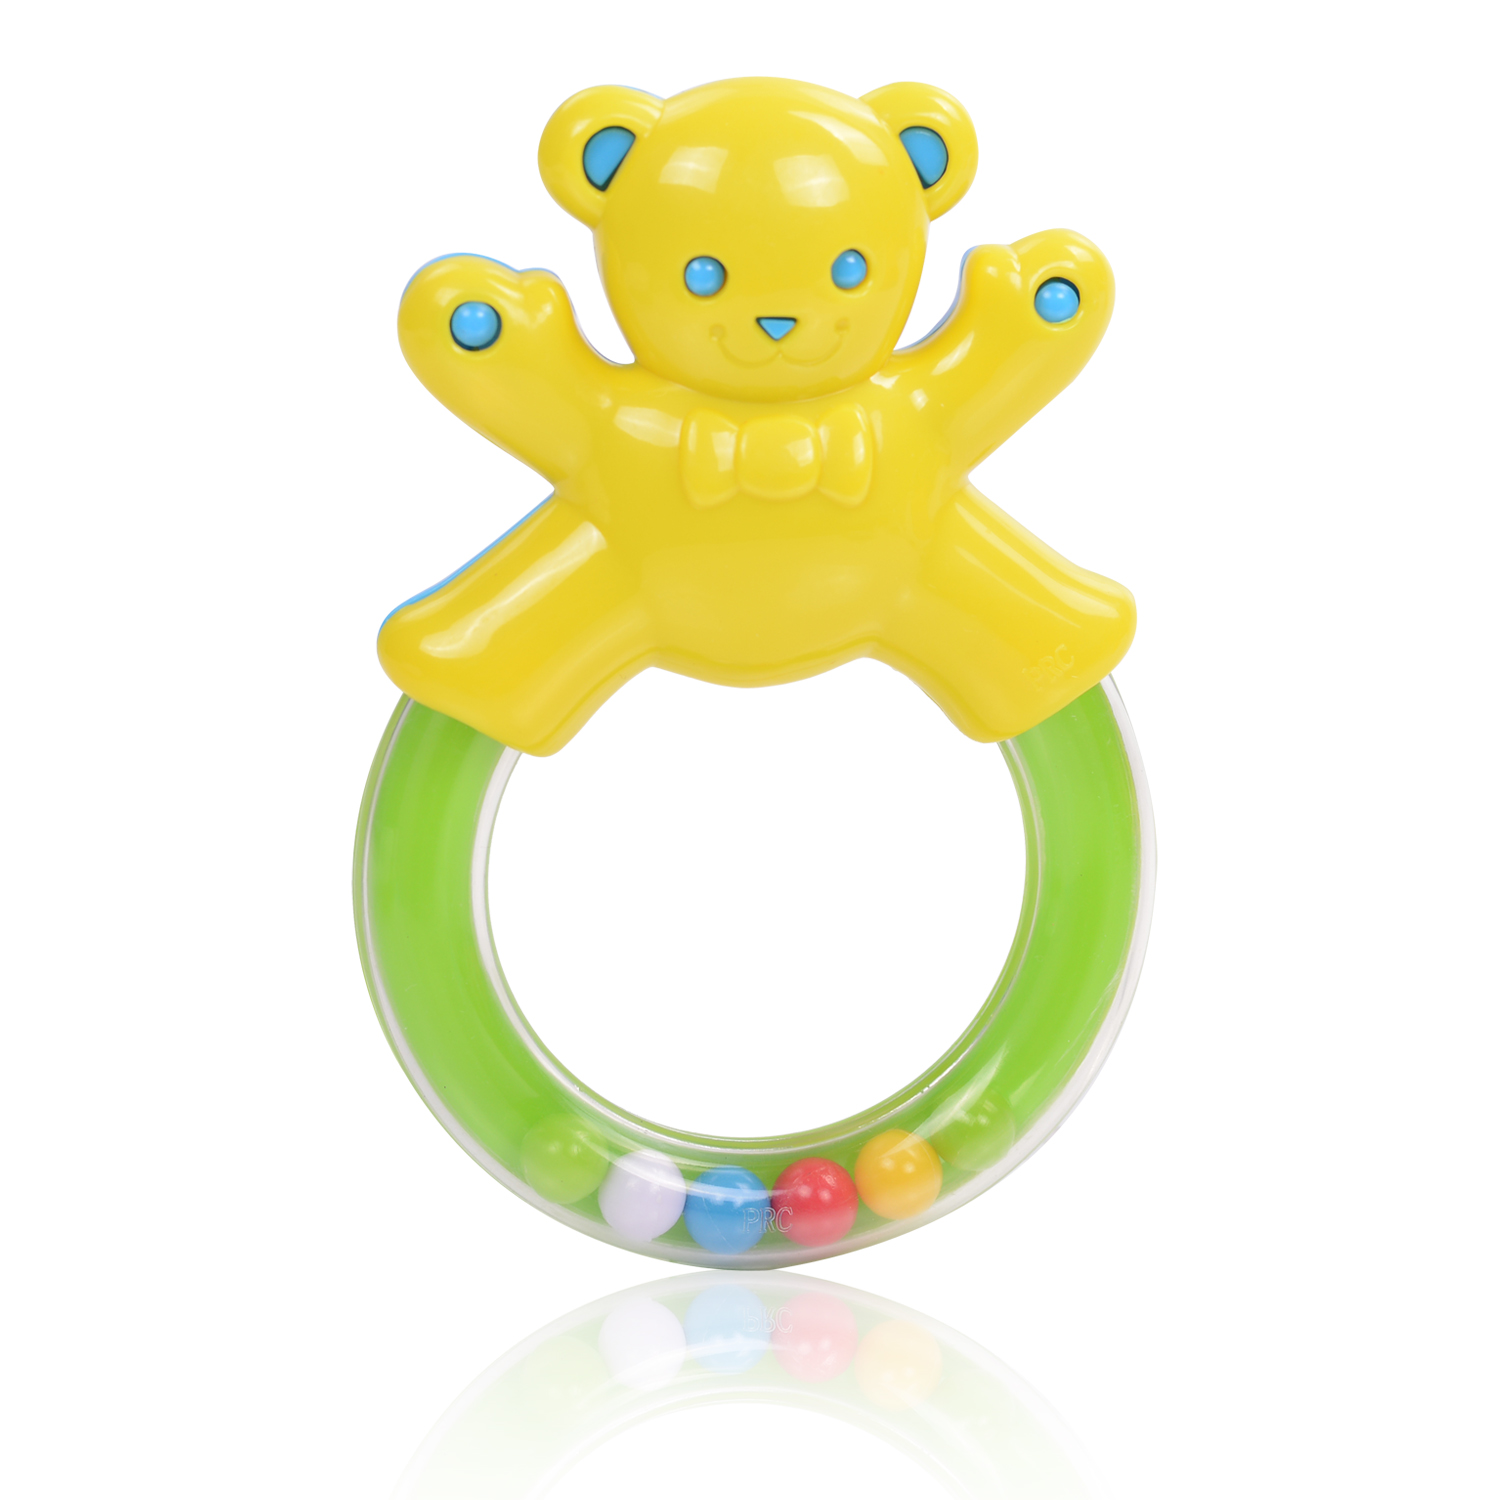 free clipart baby rattle - photo #35